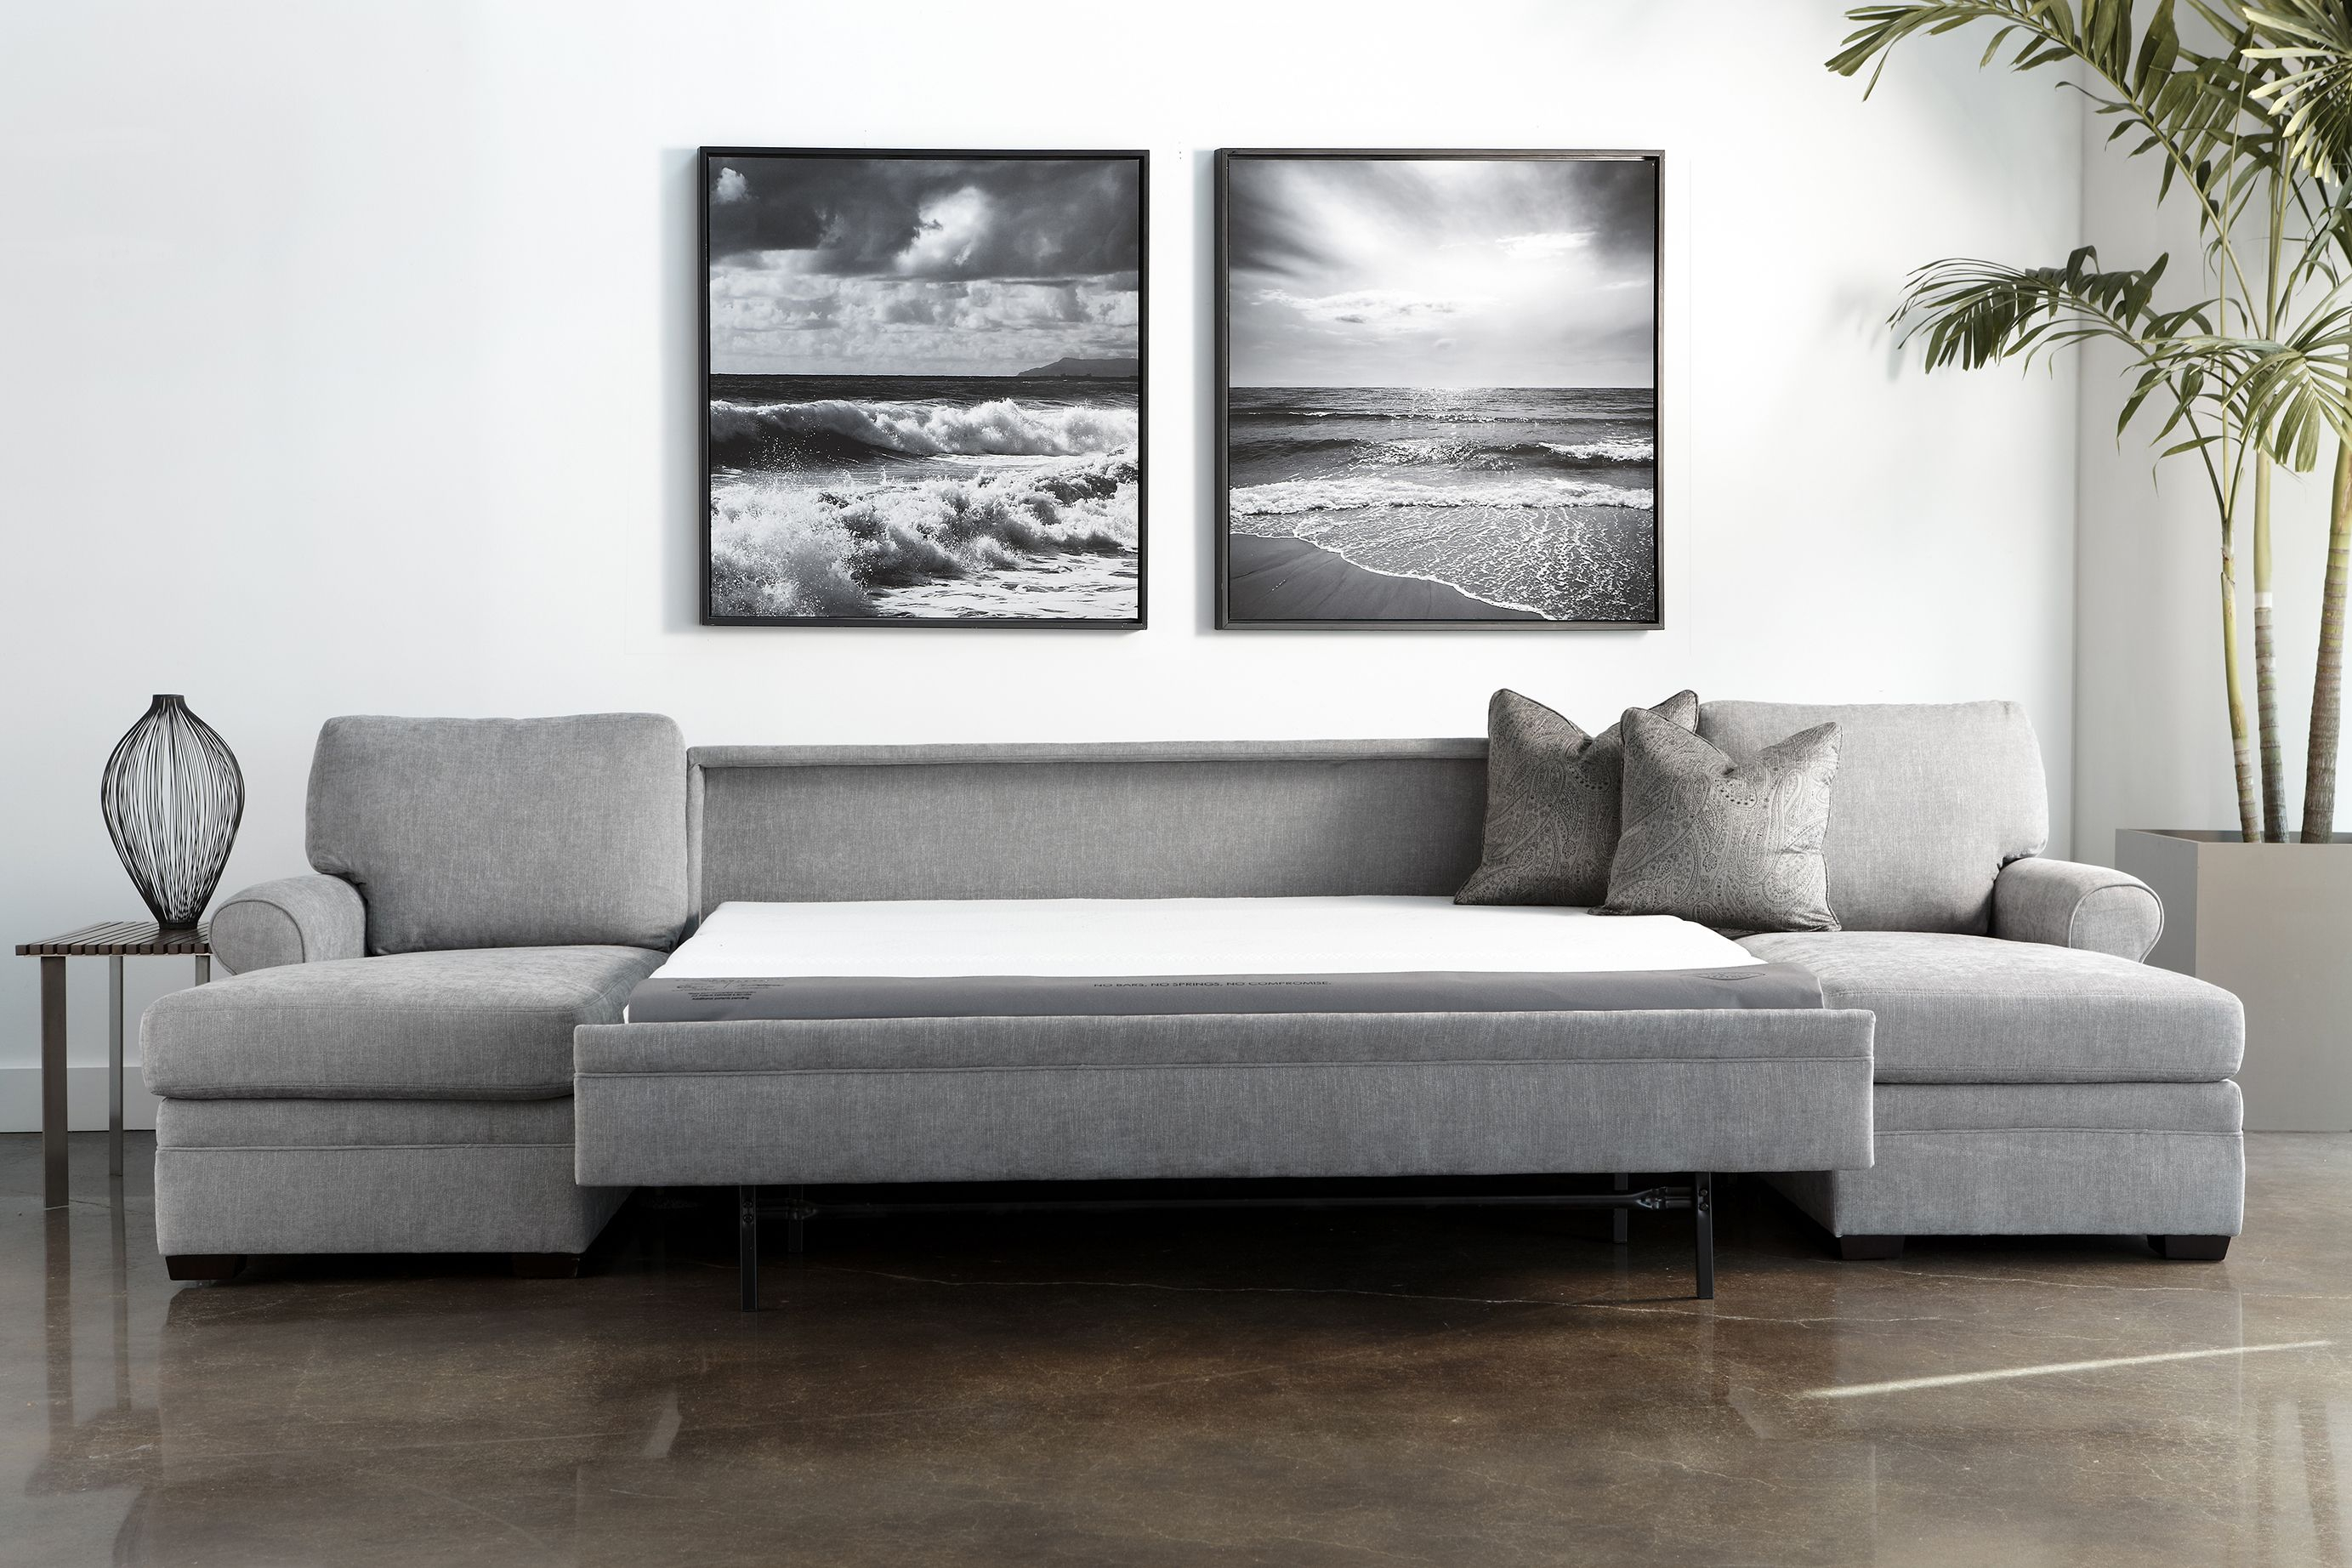 Pinbedrooms & More On American Leather Comfort Sleeper Sofas Regarding Gina Grey Leather Sofa Chairs (Image 20 of 25)